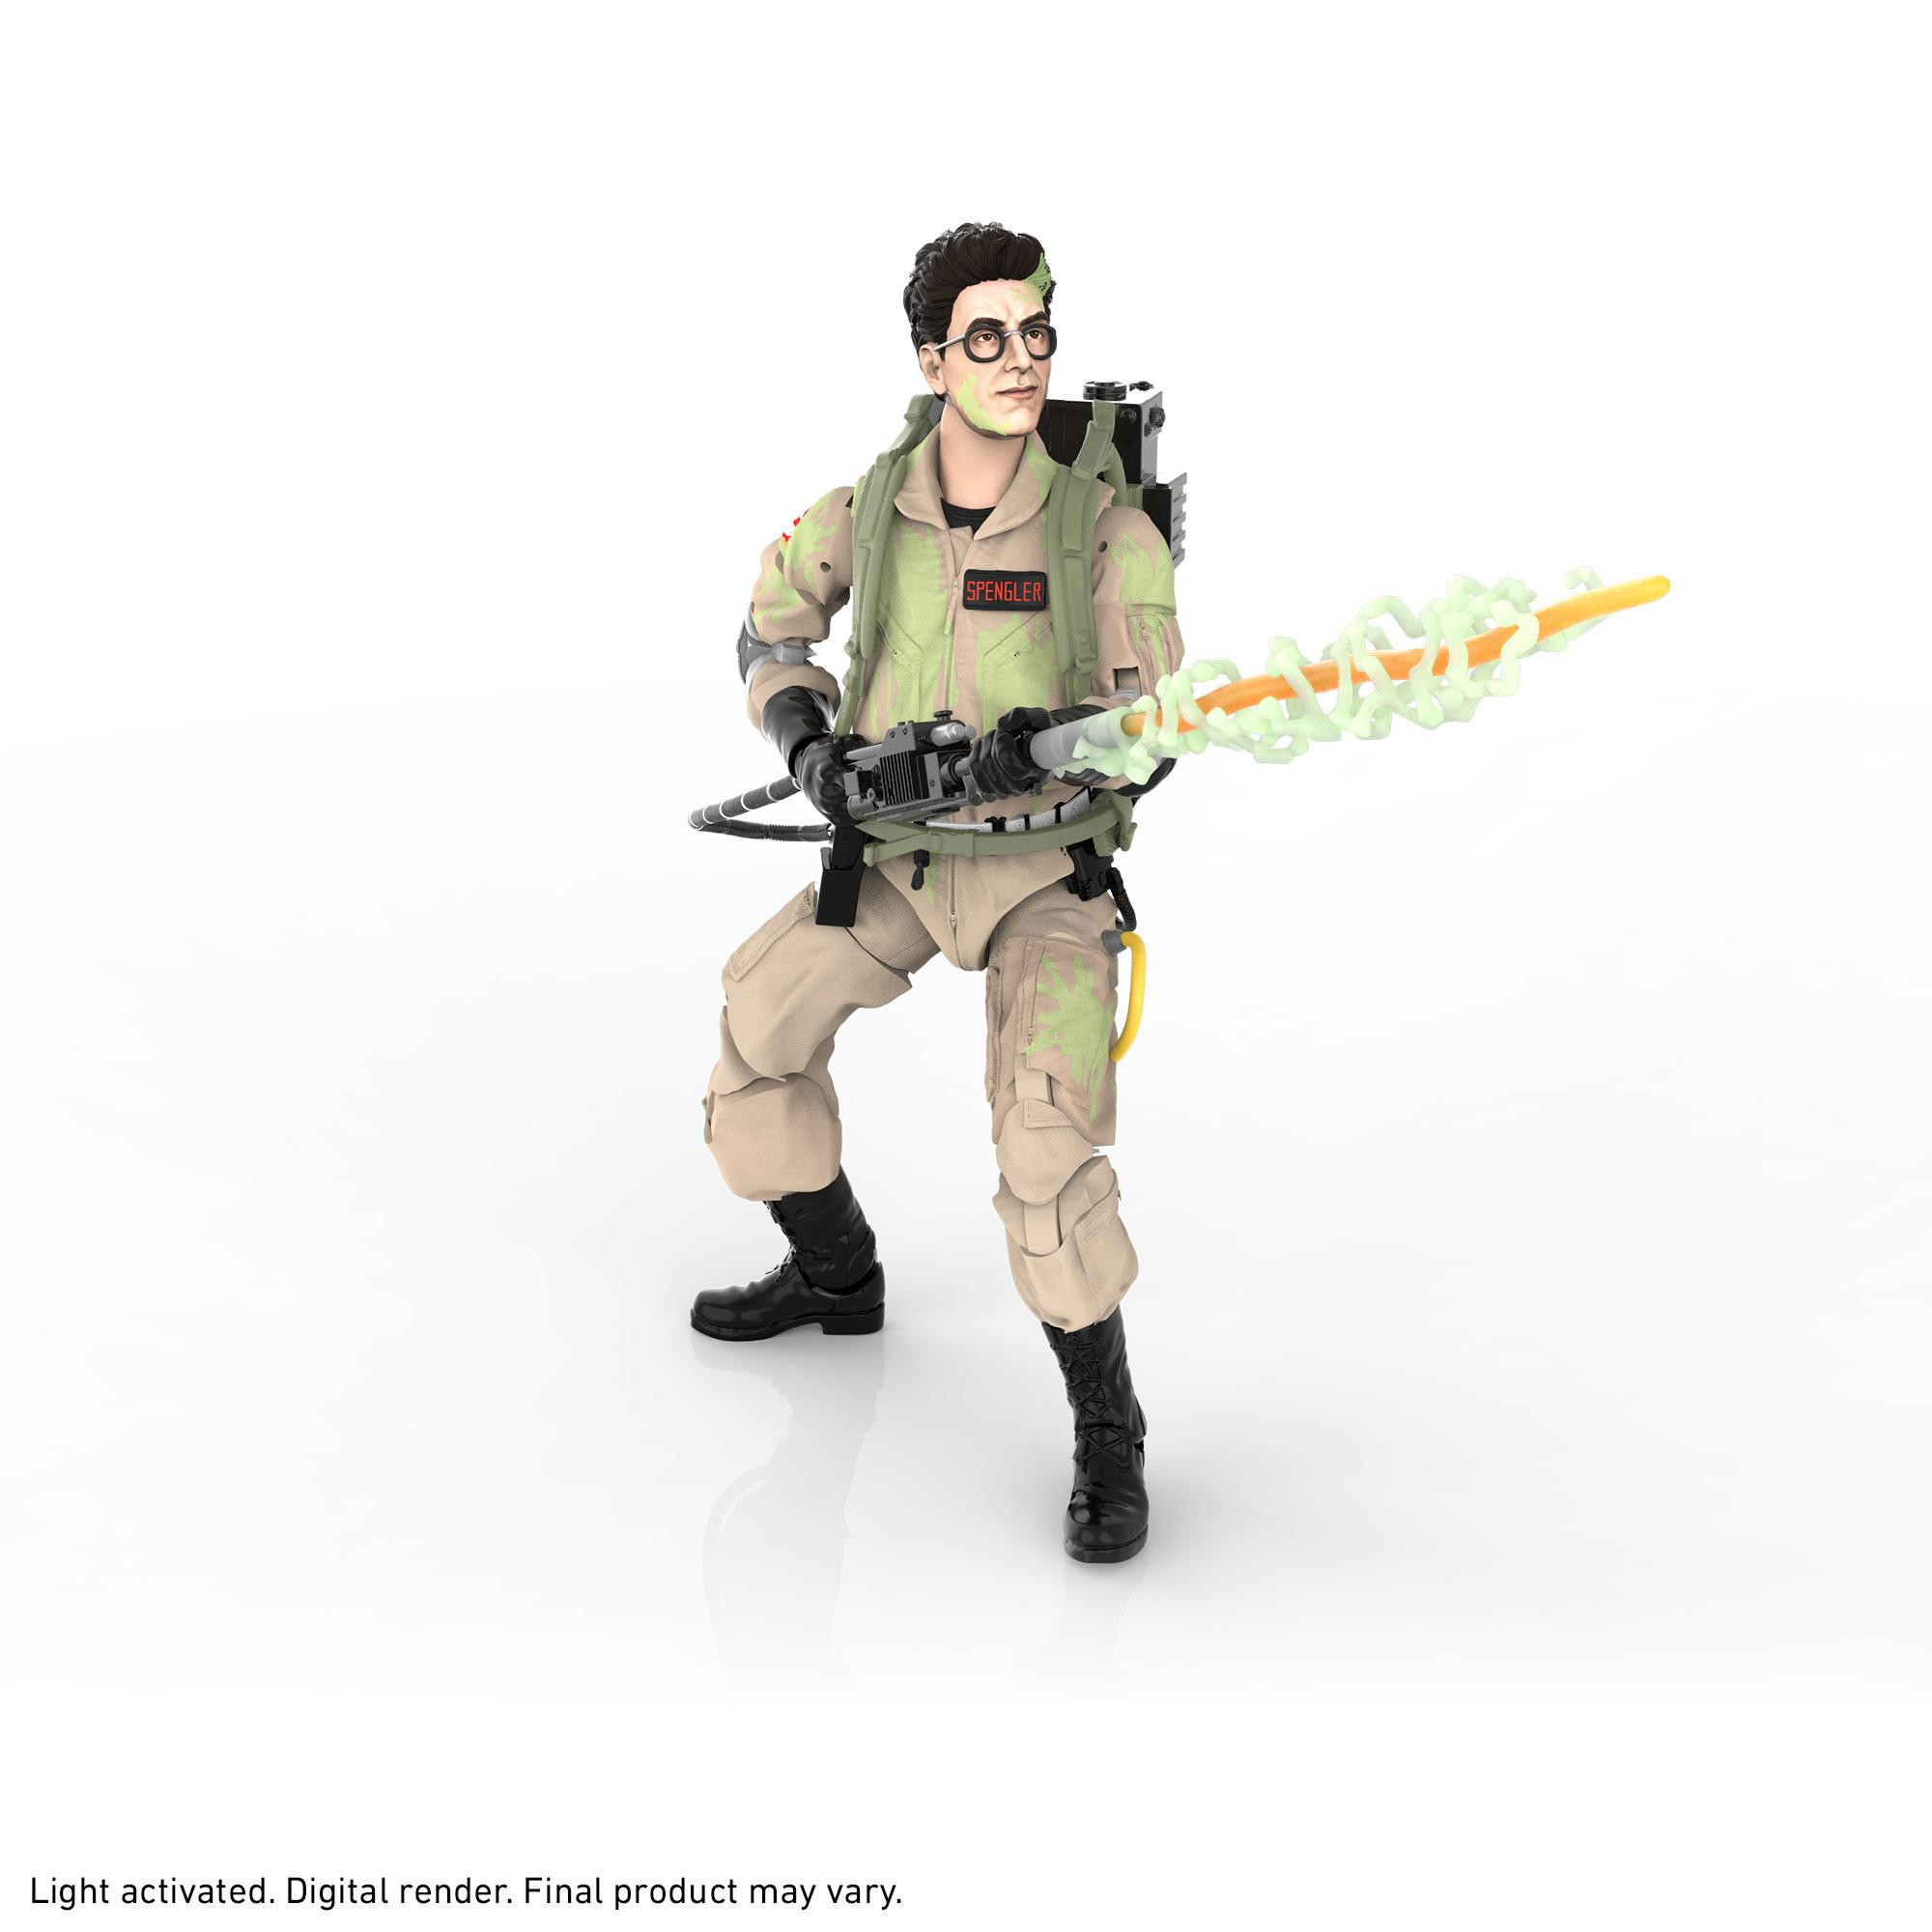 Ghostbusters Plasma Series Glow-in-the-Dark Egon Spengler Toy 6-Inch-Scale Collectible Classic 1984 Ghostbusters Figure